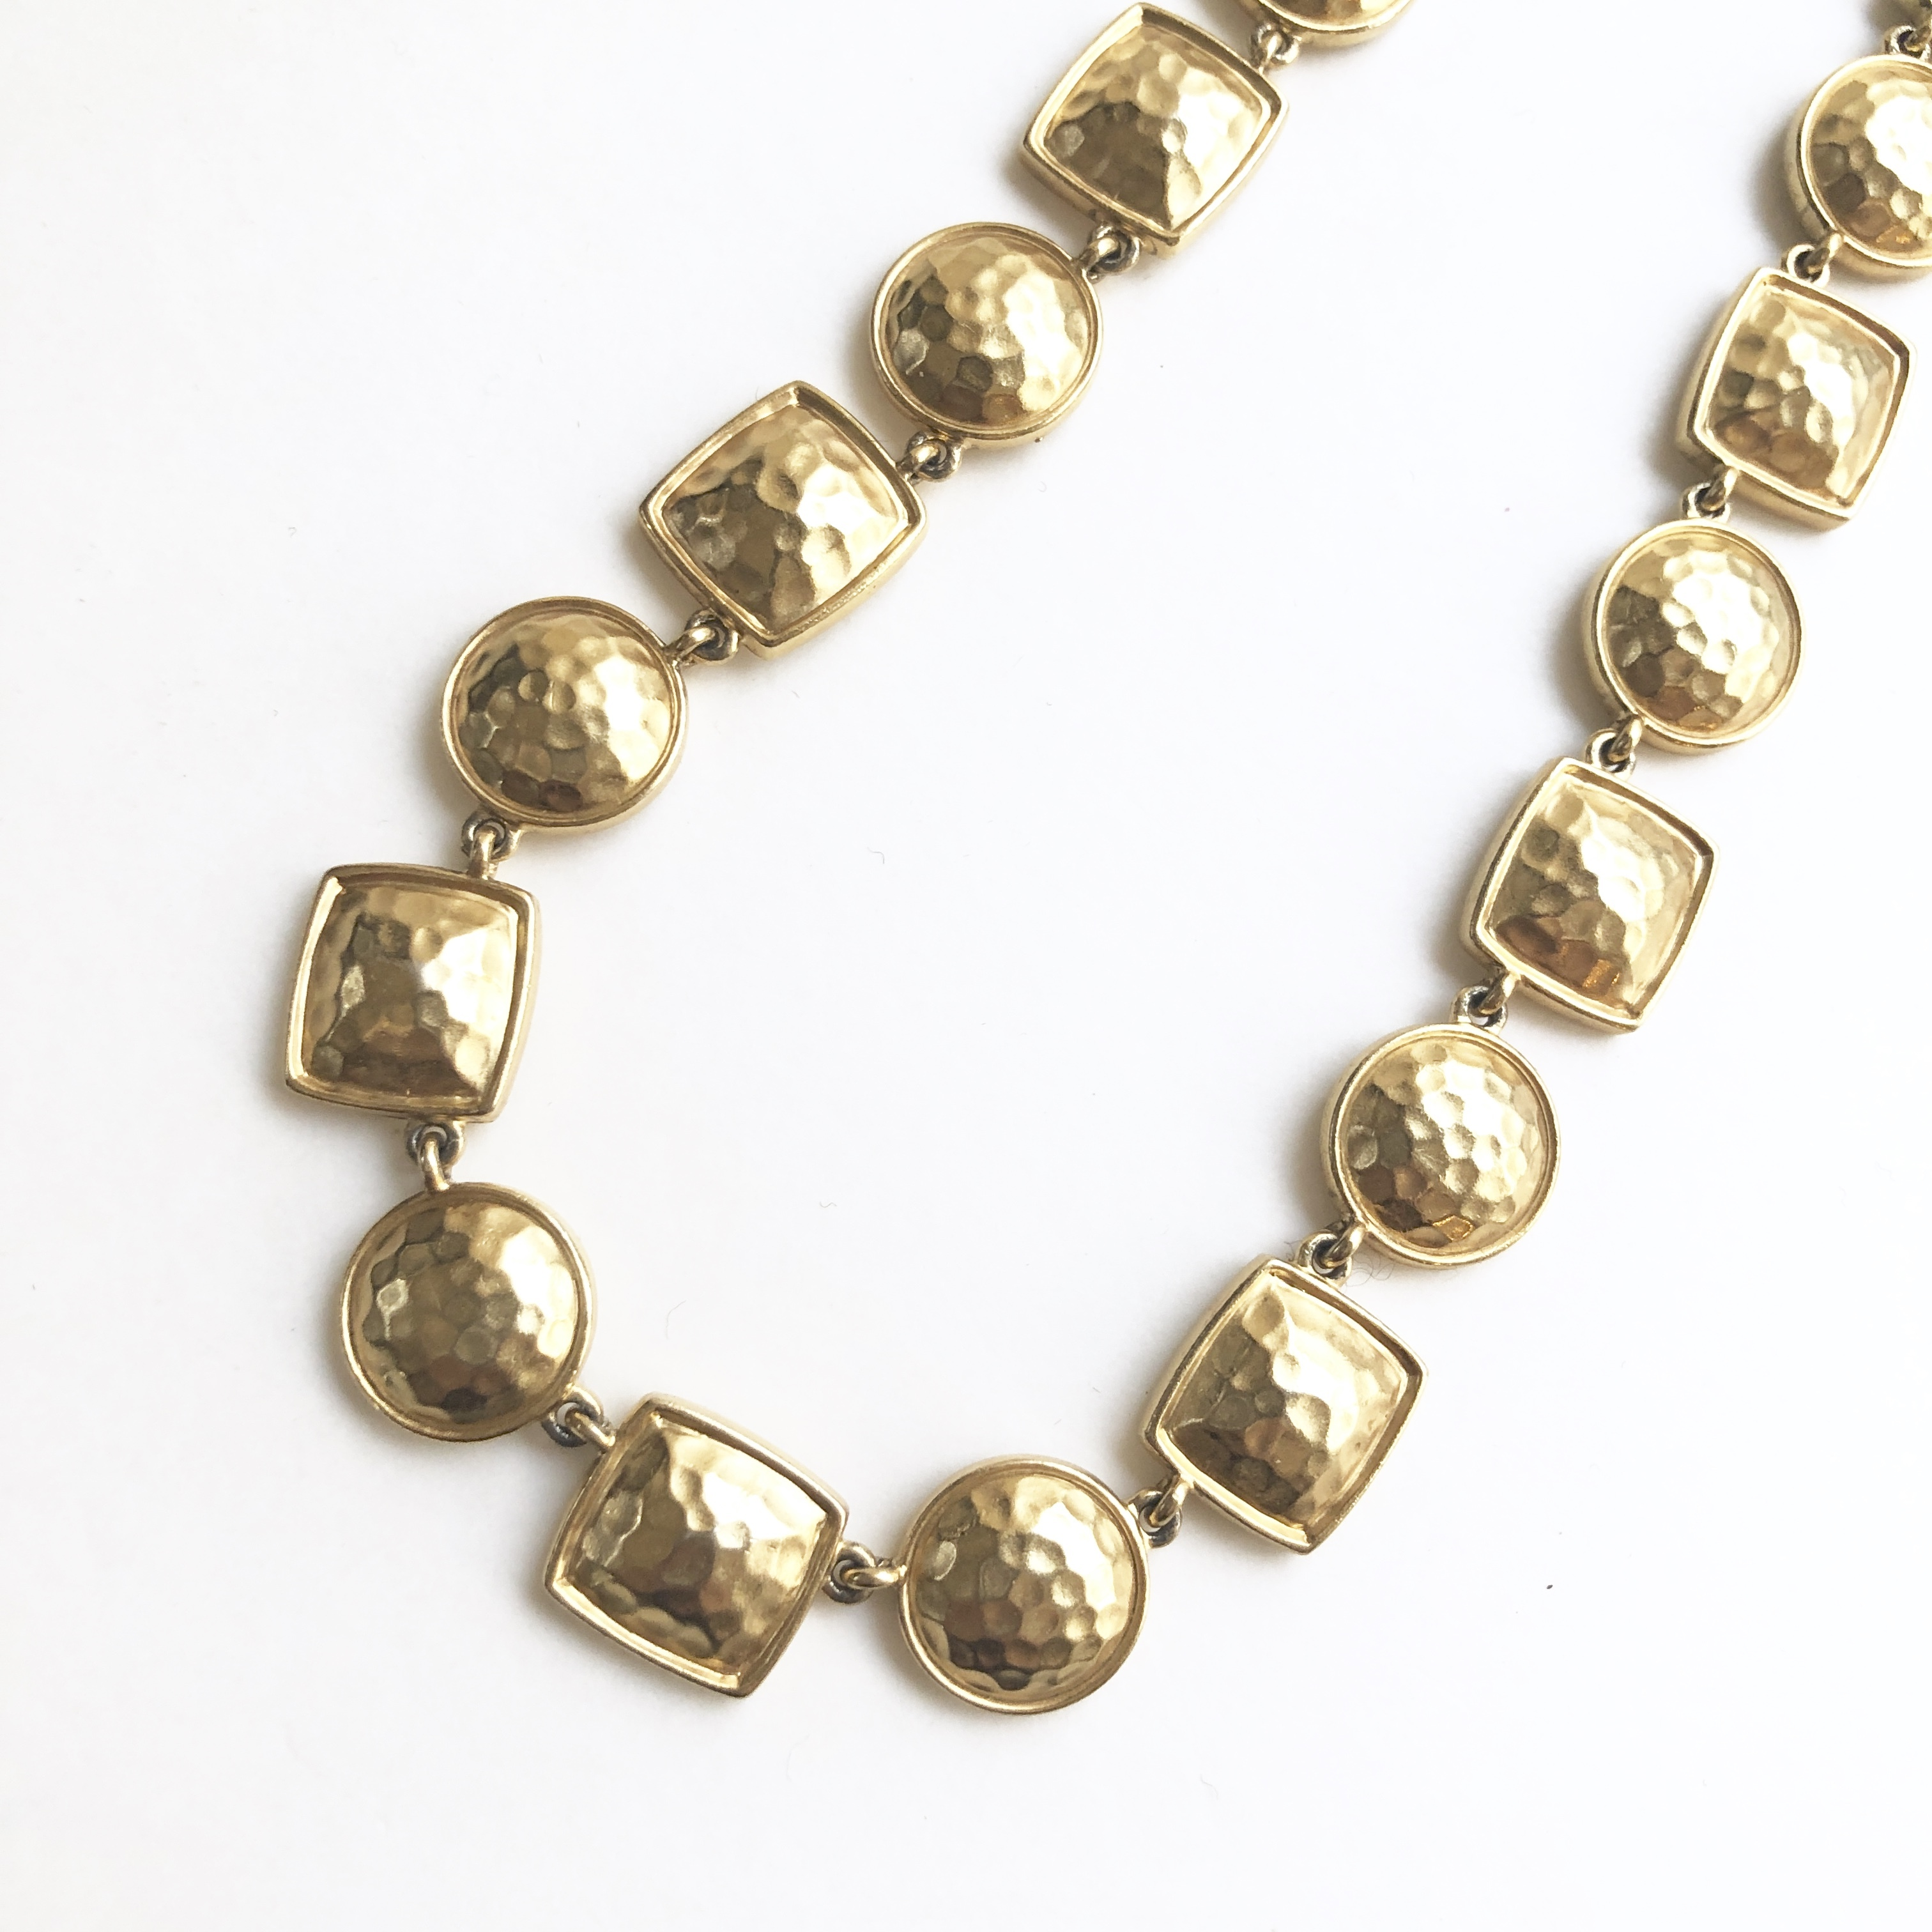 Vintage NAPIER necklace No.602*